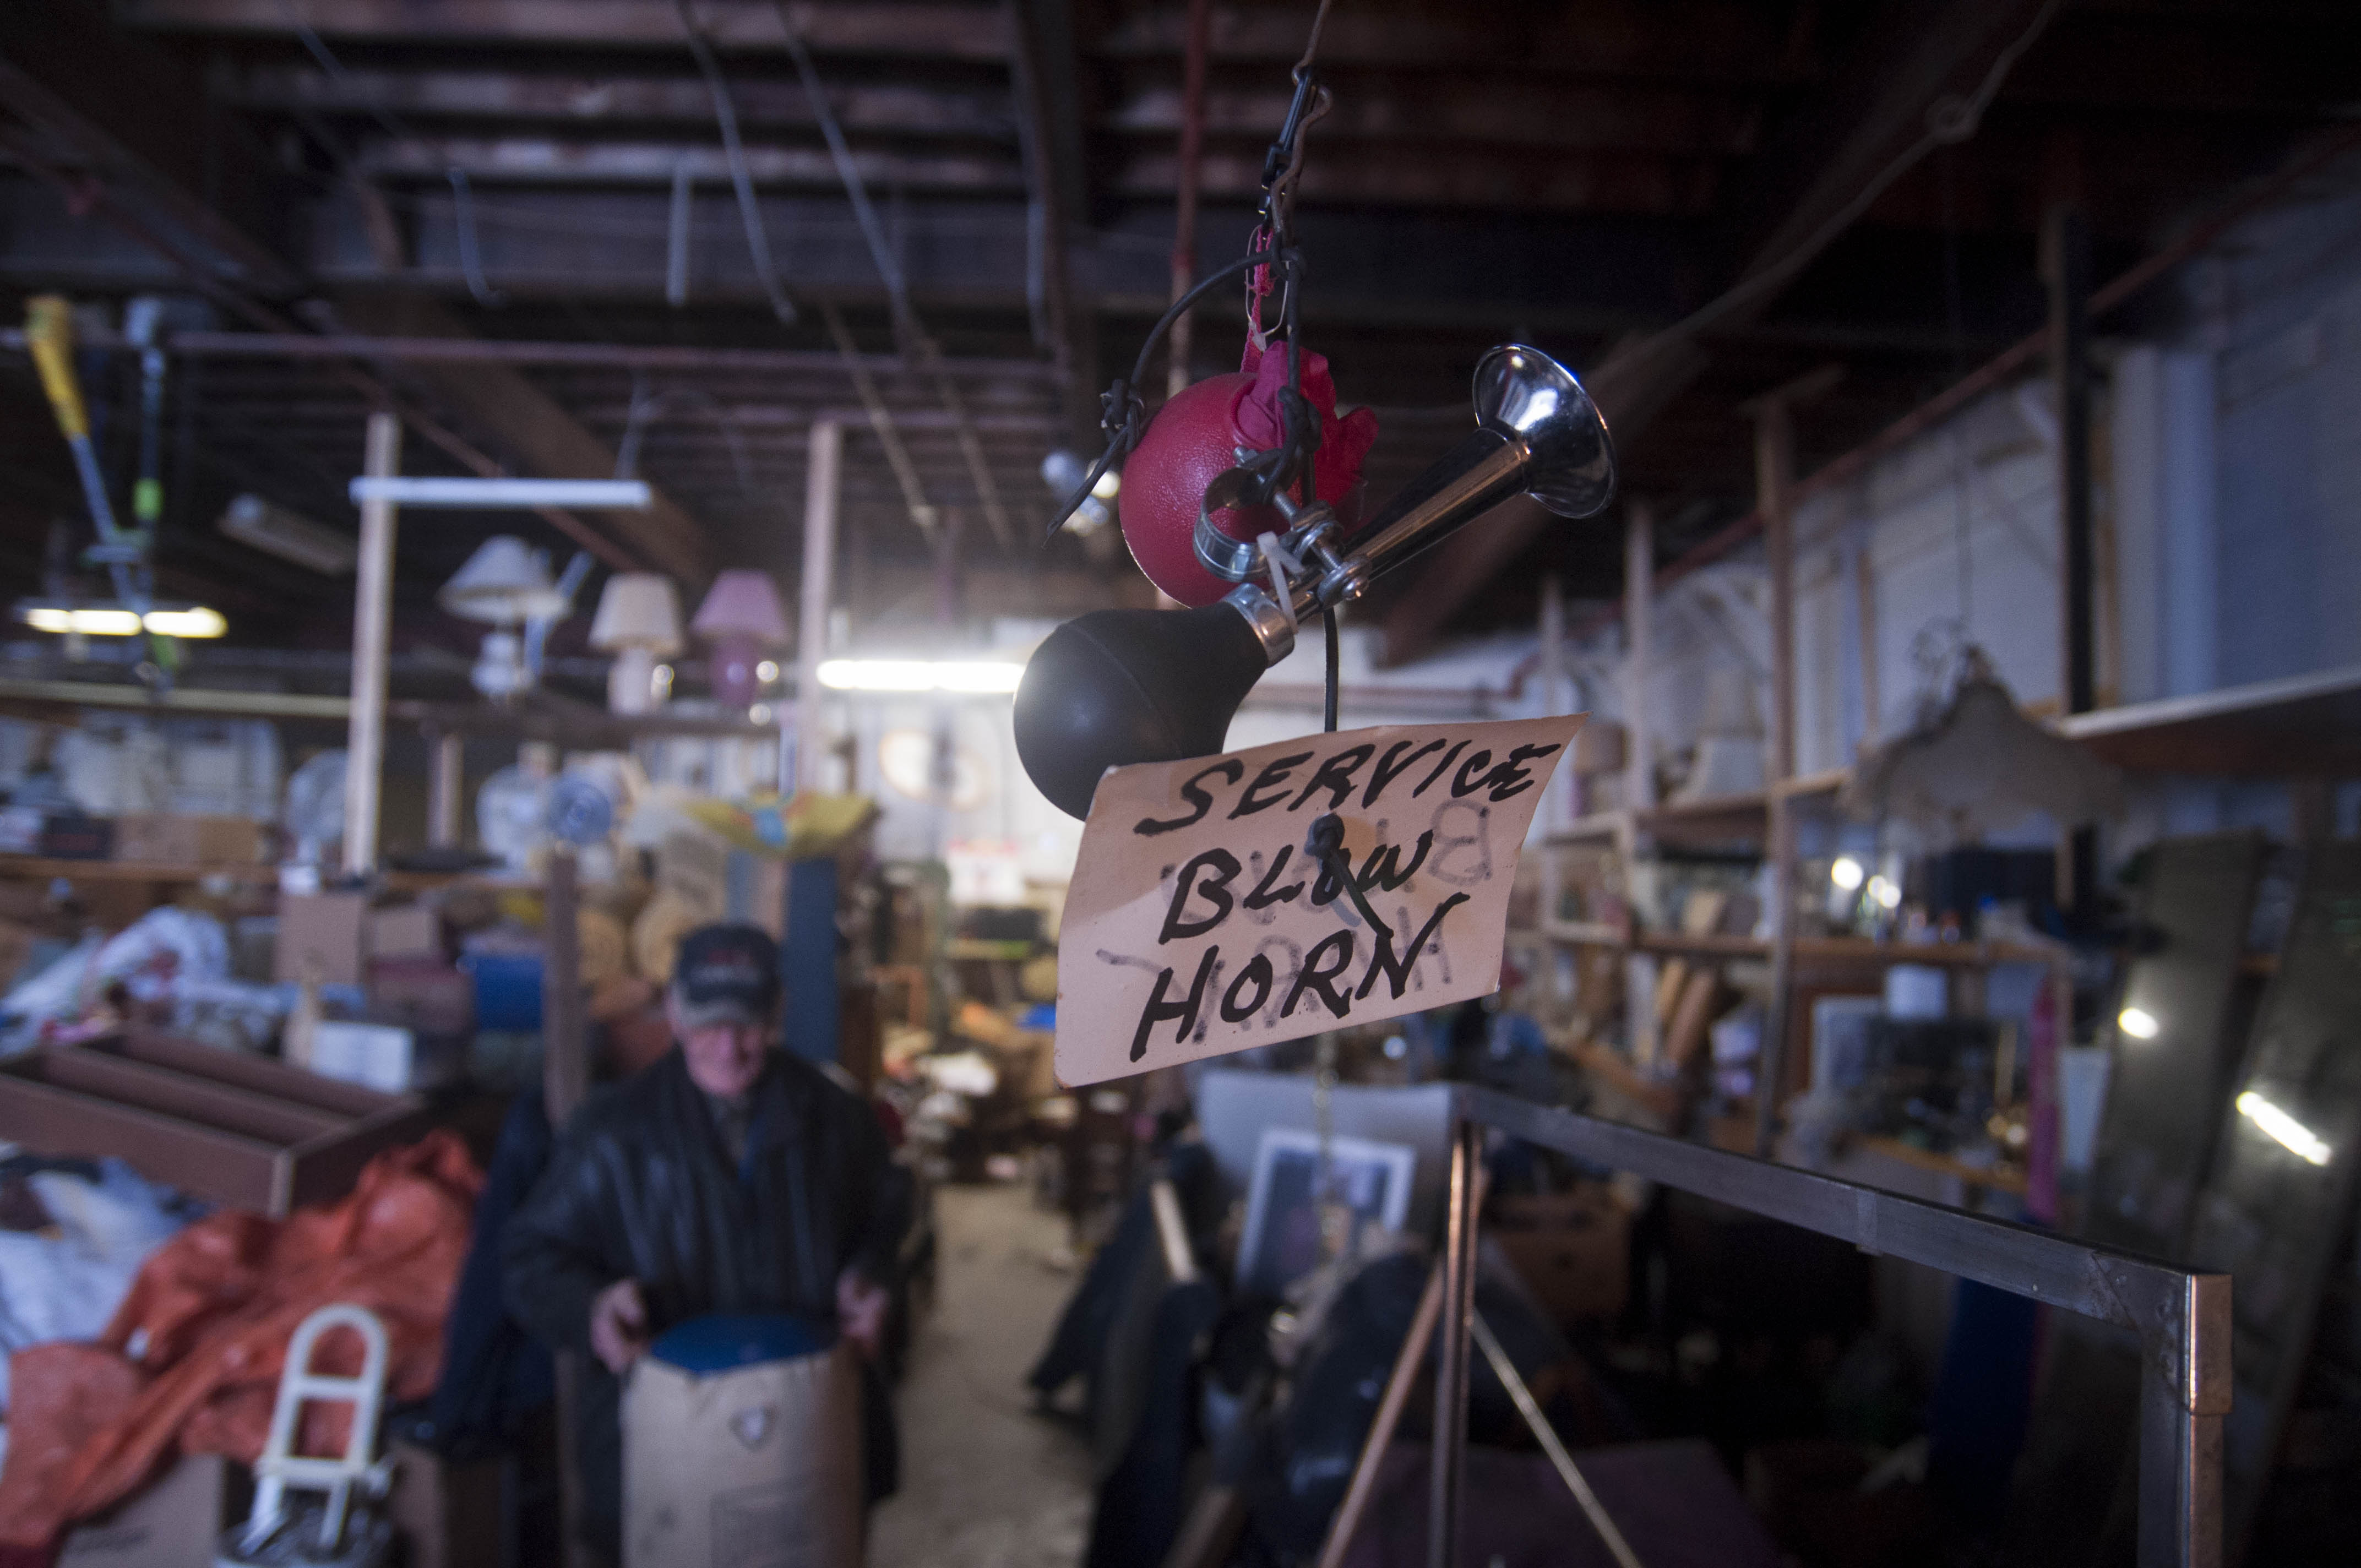 Ken Wilson is often busy in his cavernous store, so this horn.